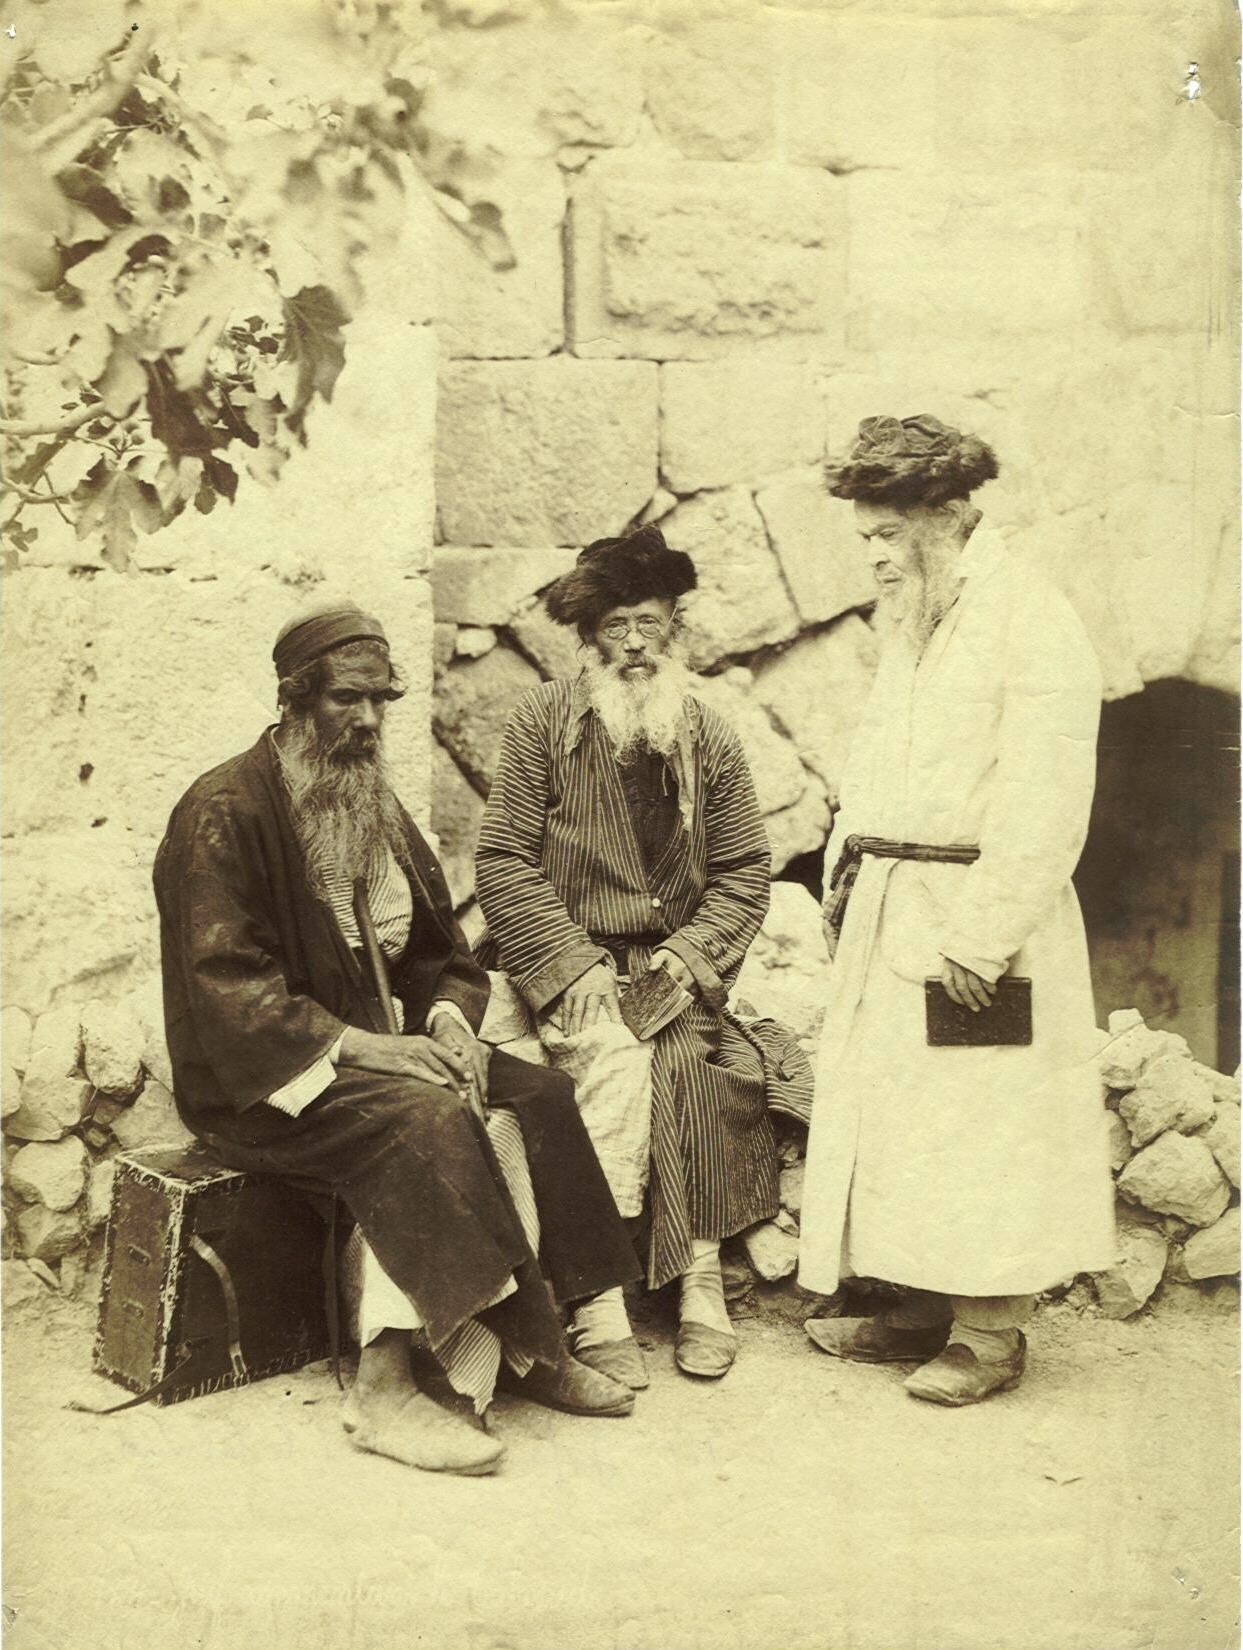 Jews discussing the Talmud